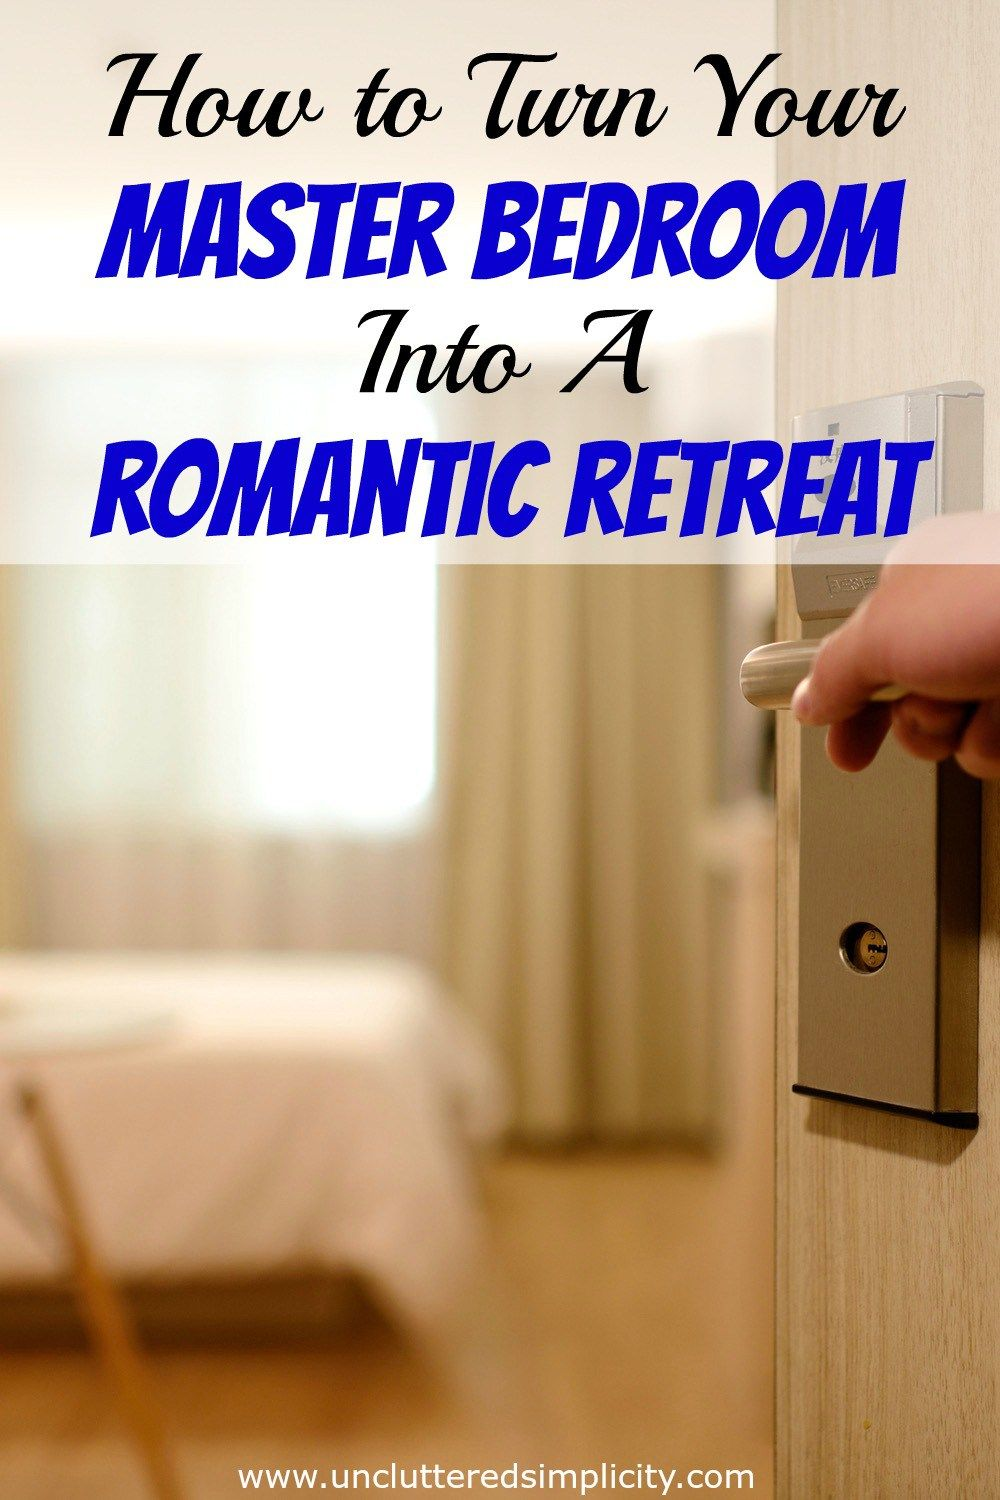 How To Turn Your Master Bedroom Into A Romantic Retreat